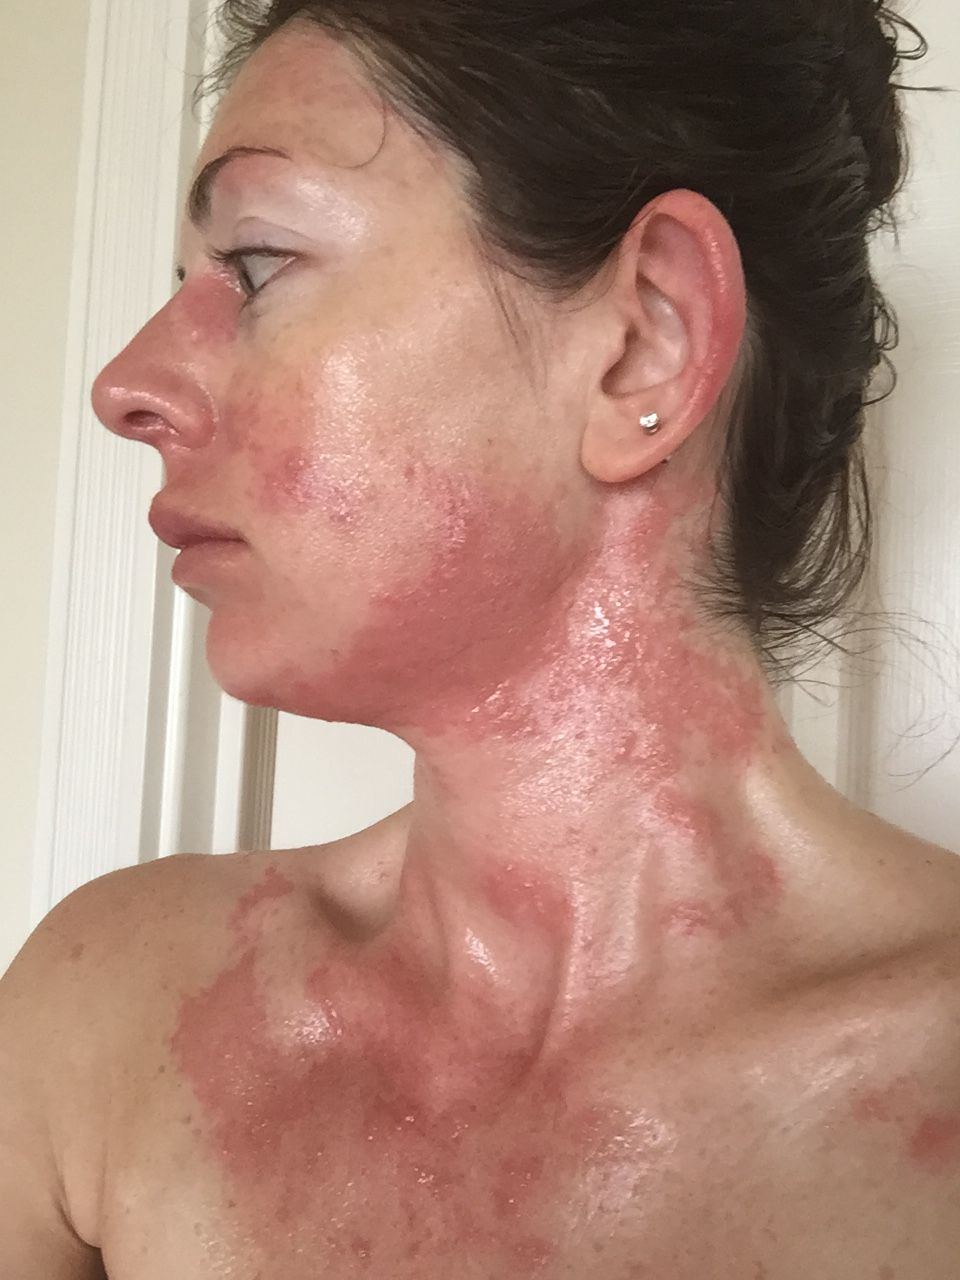 Filesevere Allergic Reaction To Urushiol Poison Oak 4 Days After